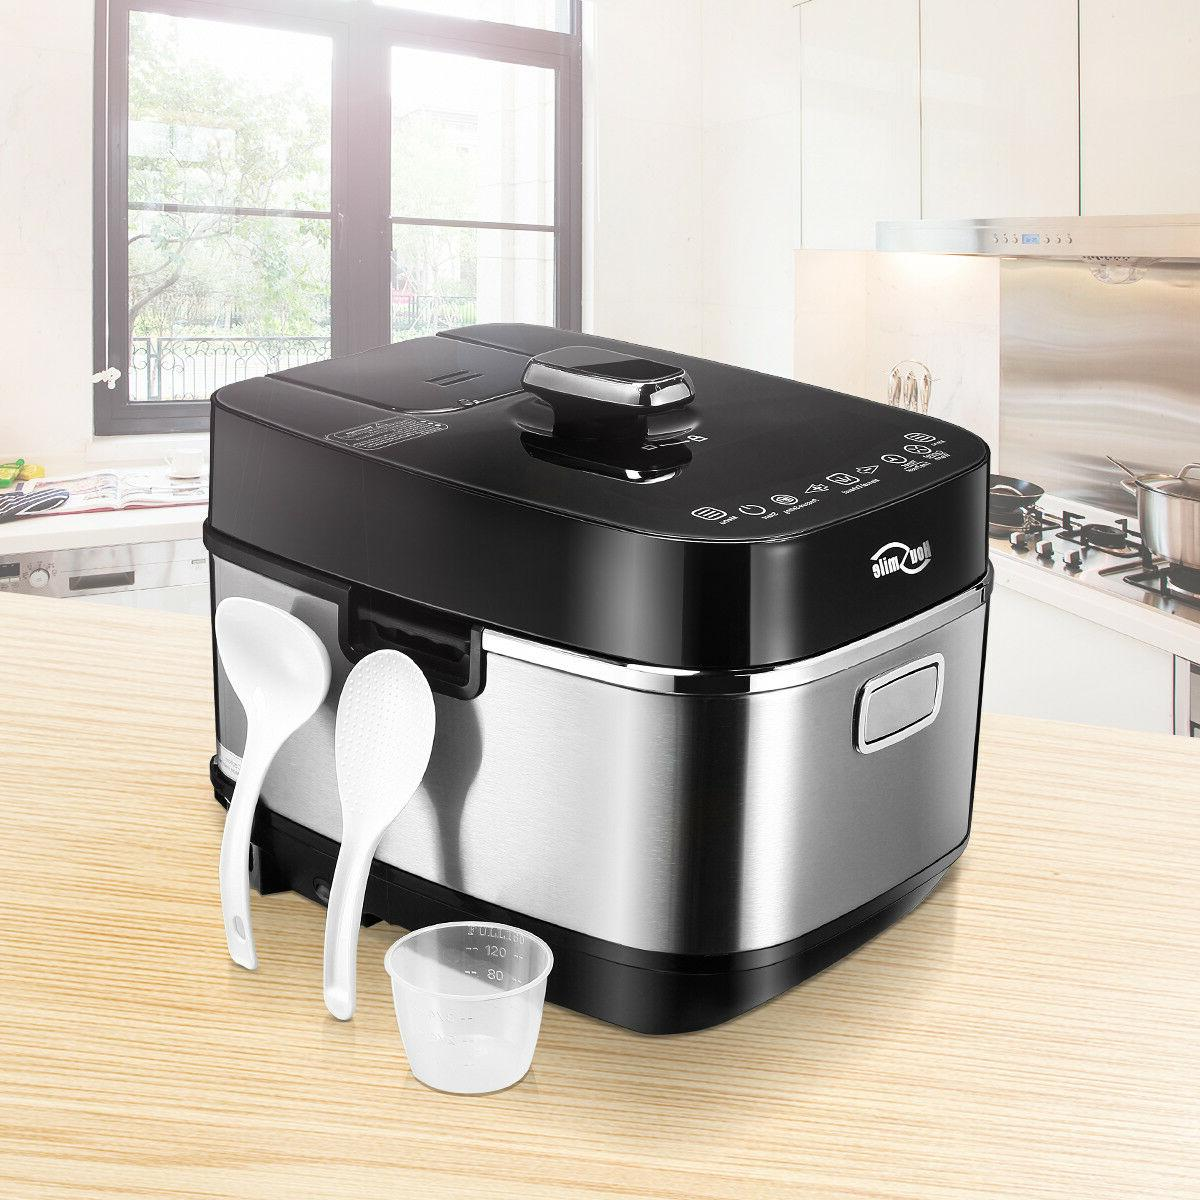 Housmile 5L IH Electric Rice Cooker